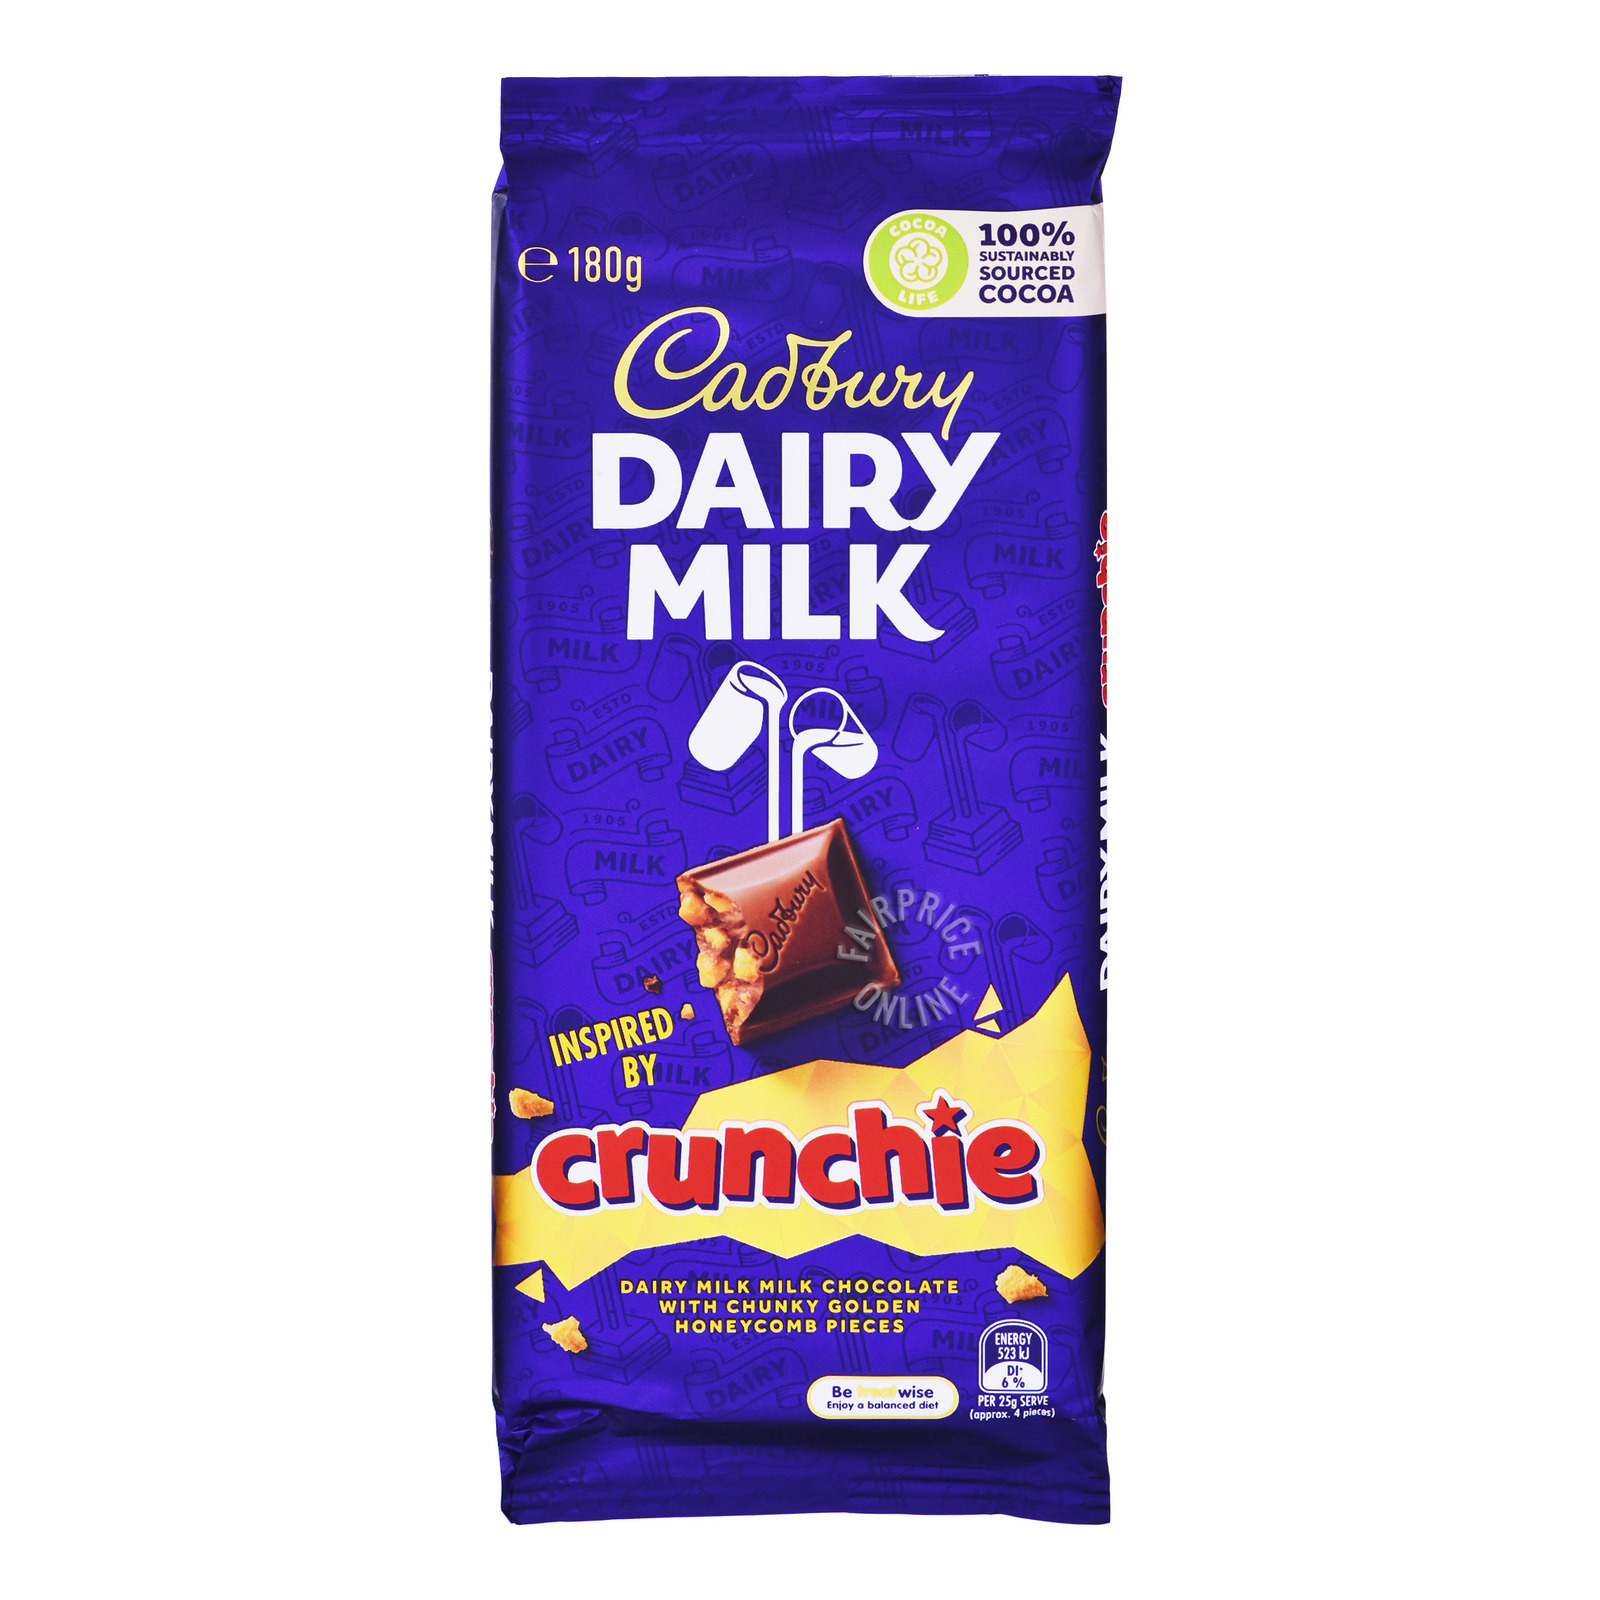 Cadbury Dairy Milk Chocolate Block - Crunchie